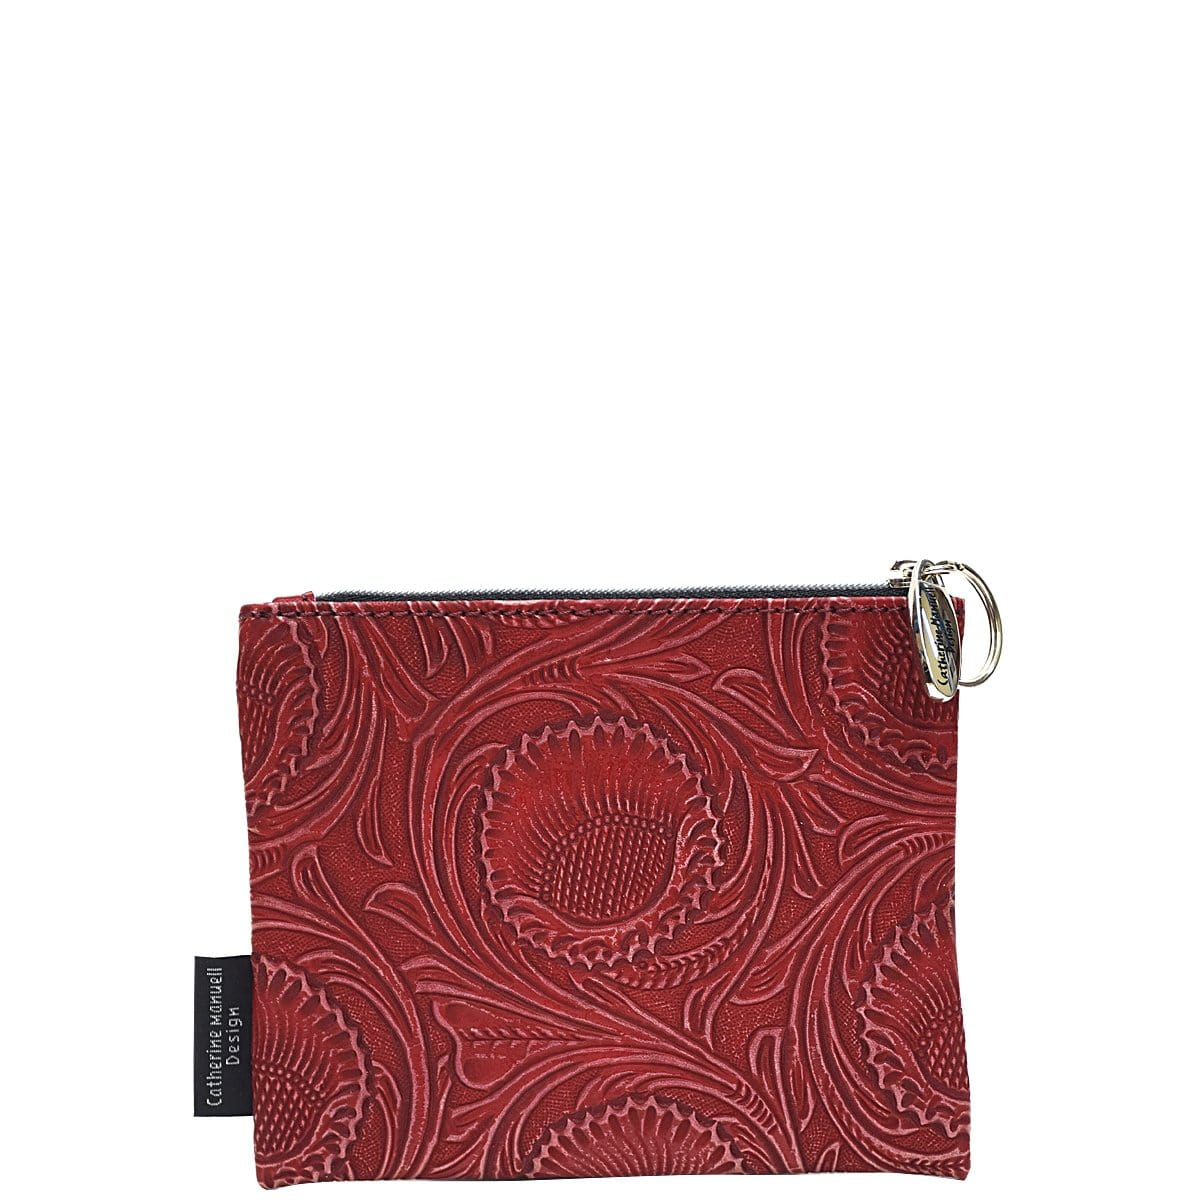 Everyday Purse - Red Thistle